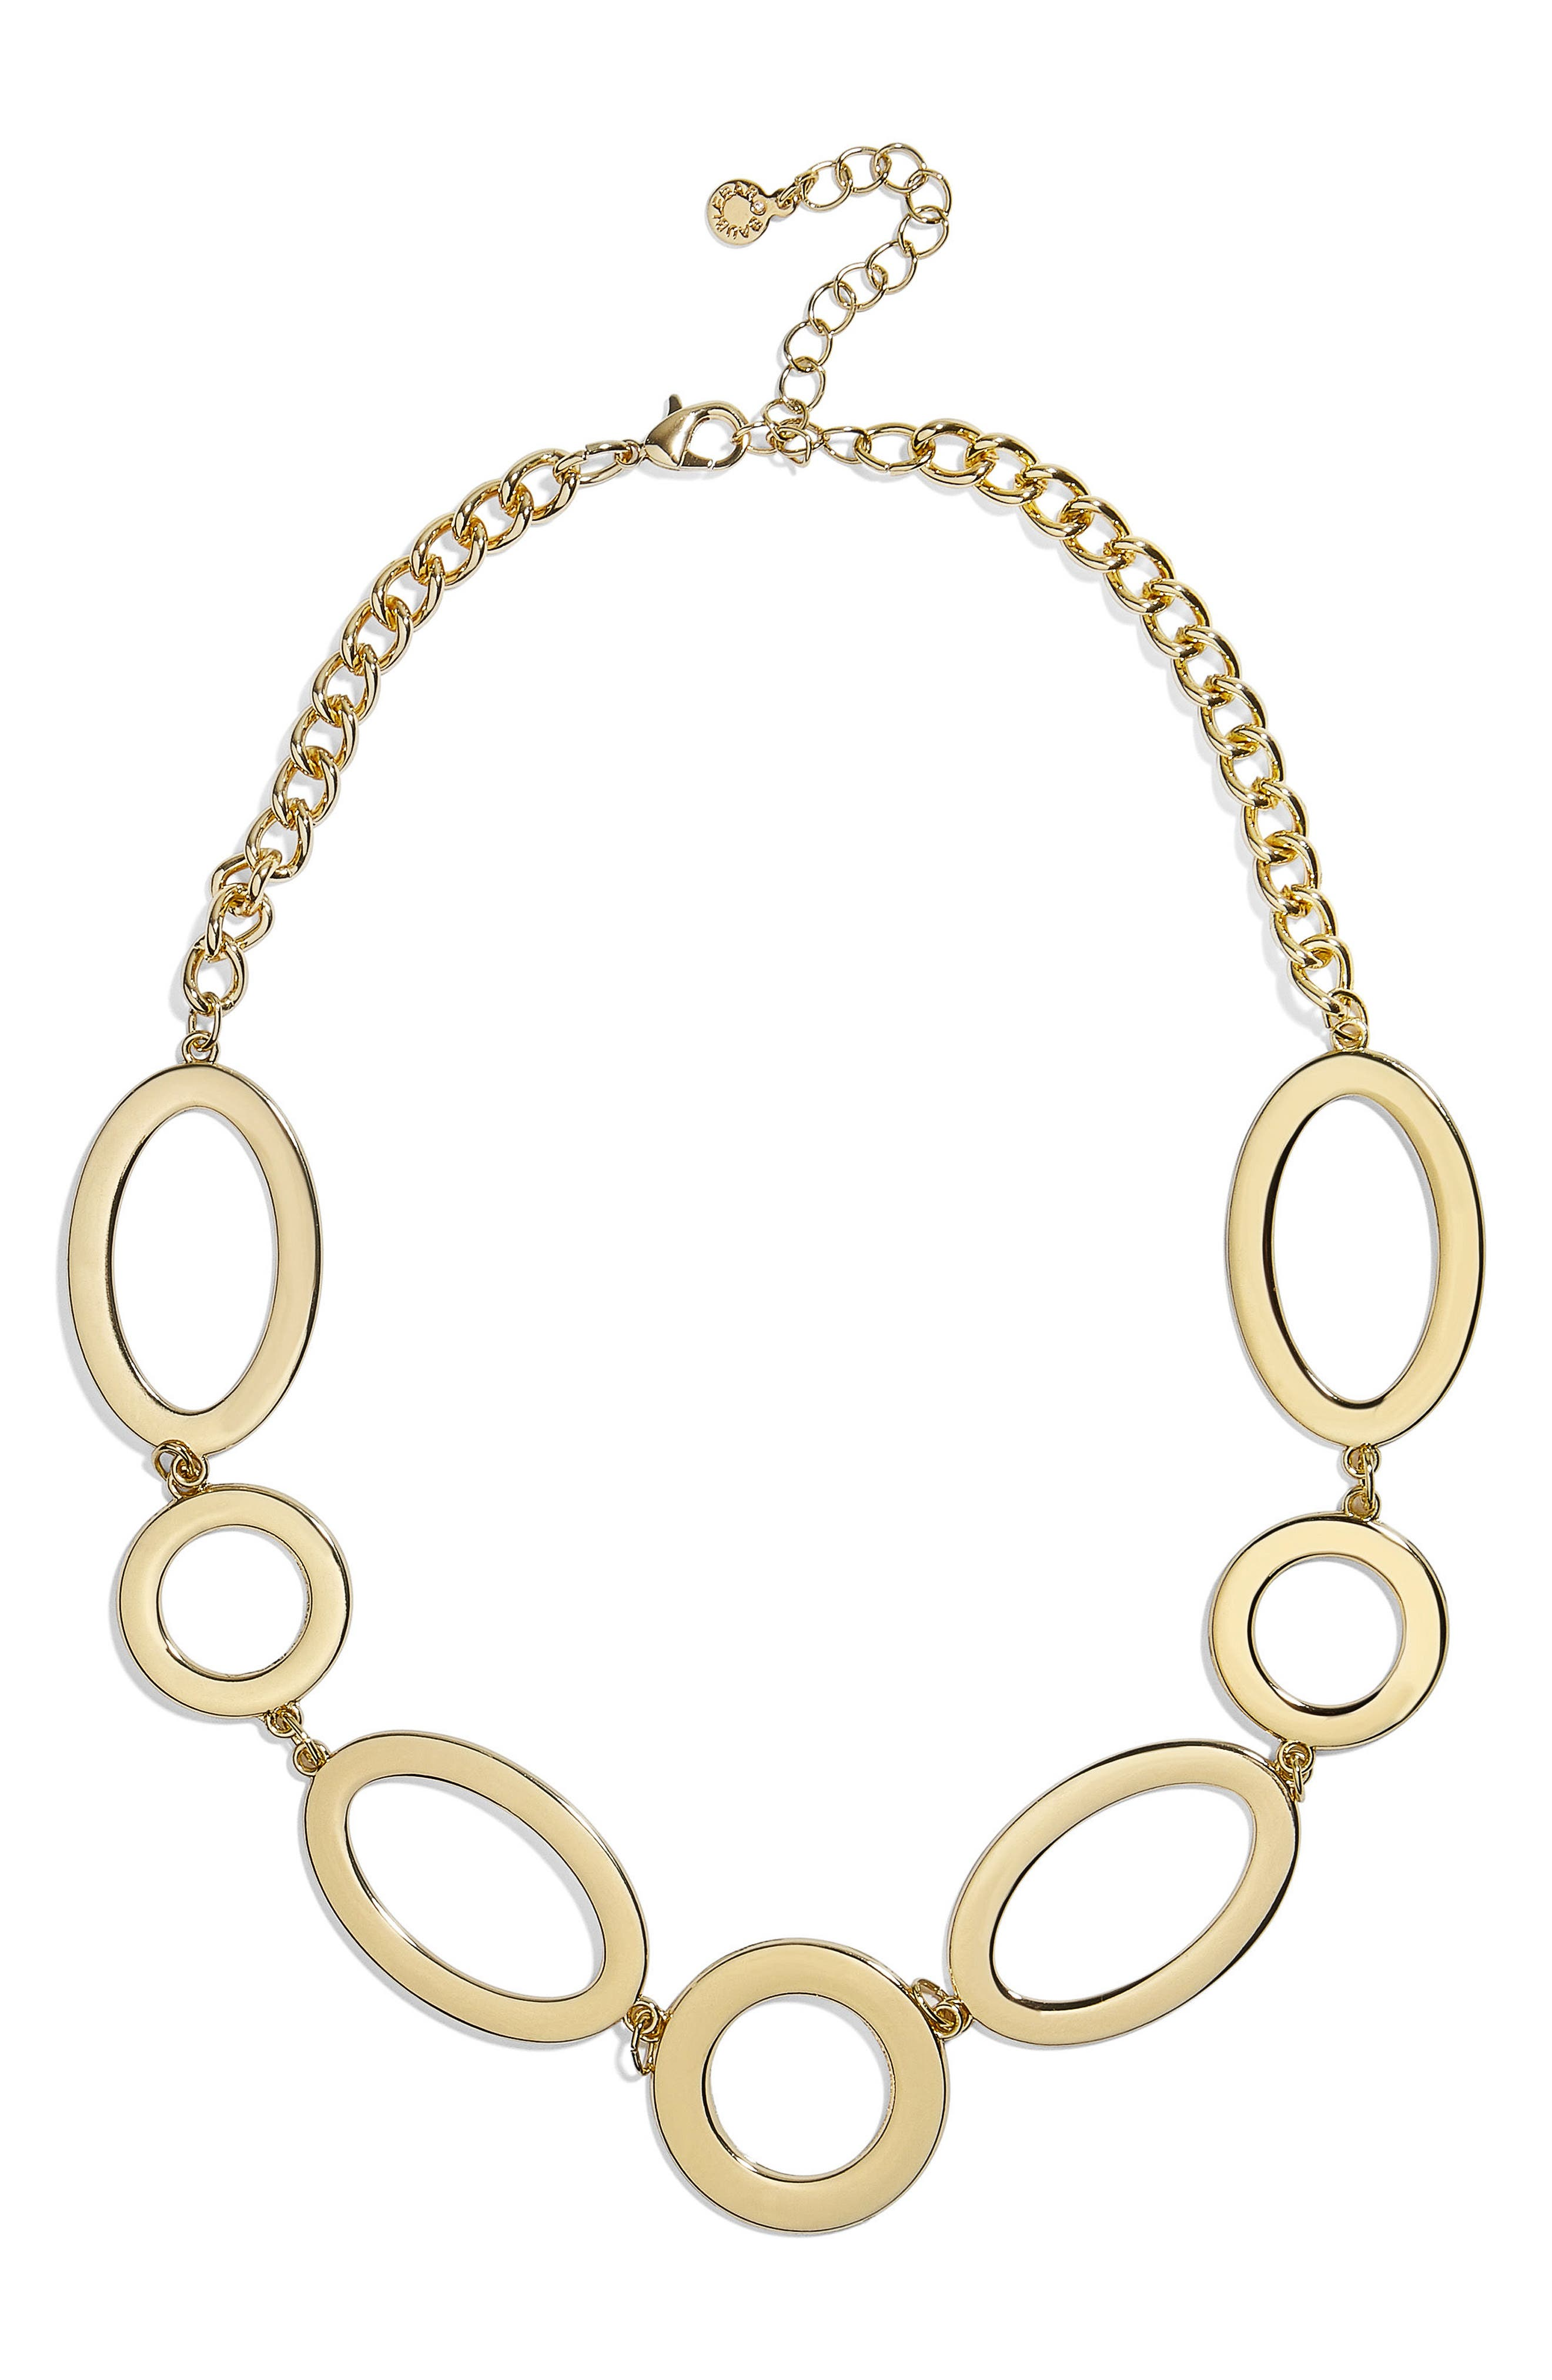 Romona Oval & Circle Statement Necklace,                             Main thumbnail 1, color,                             710